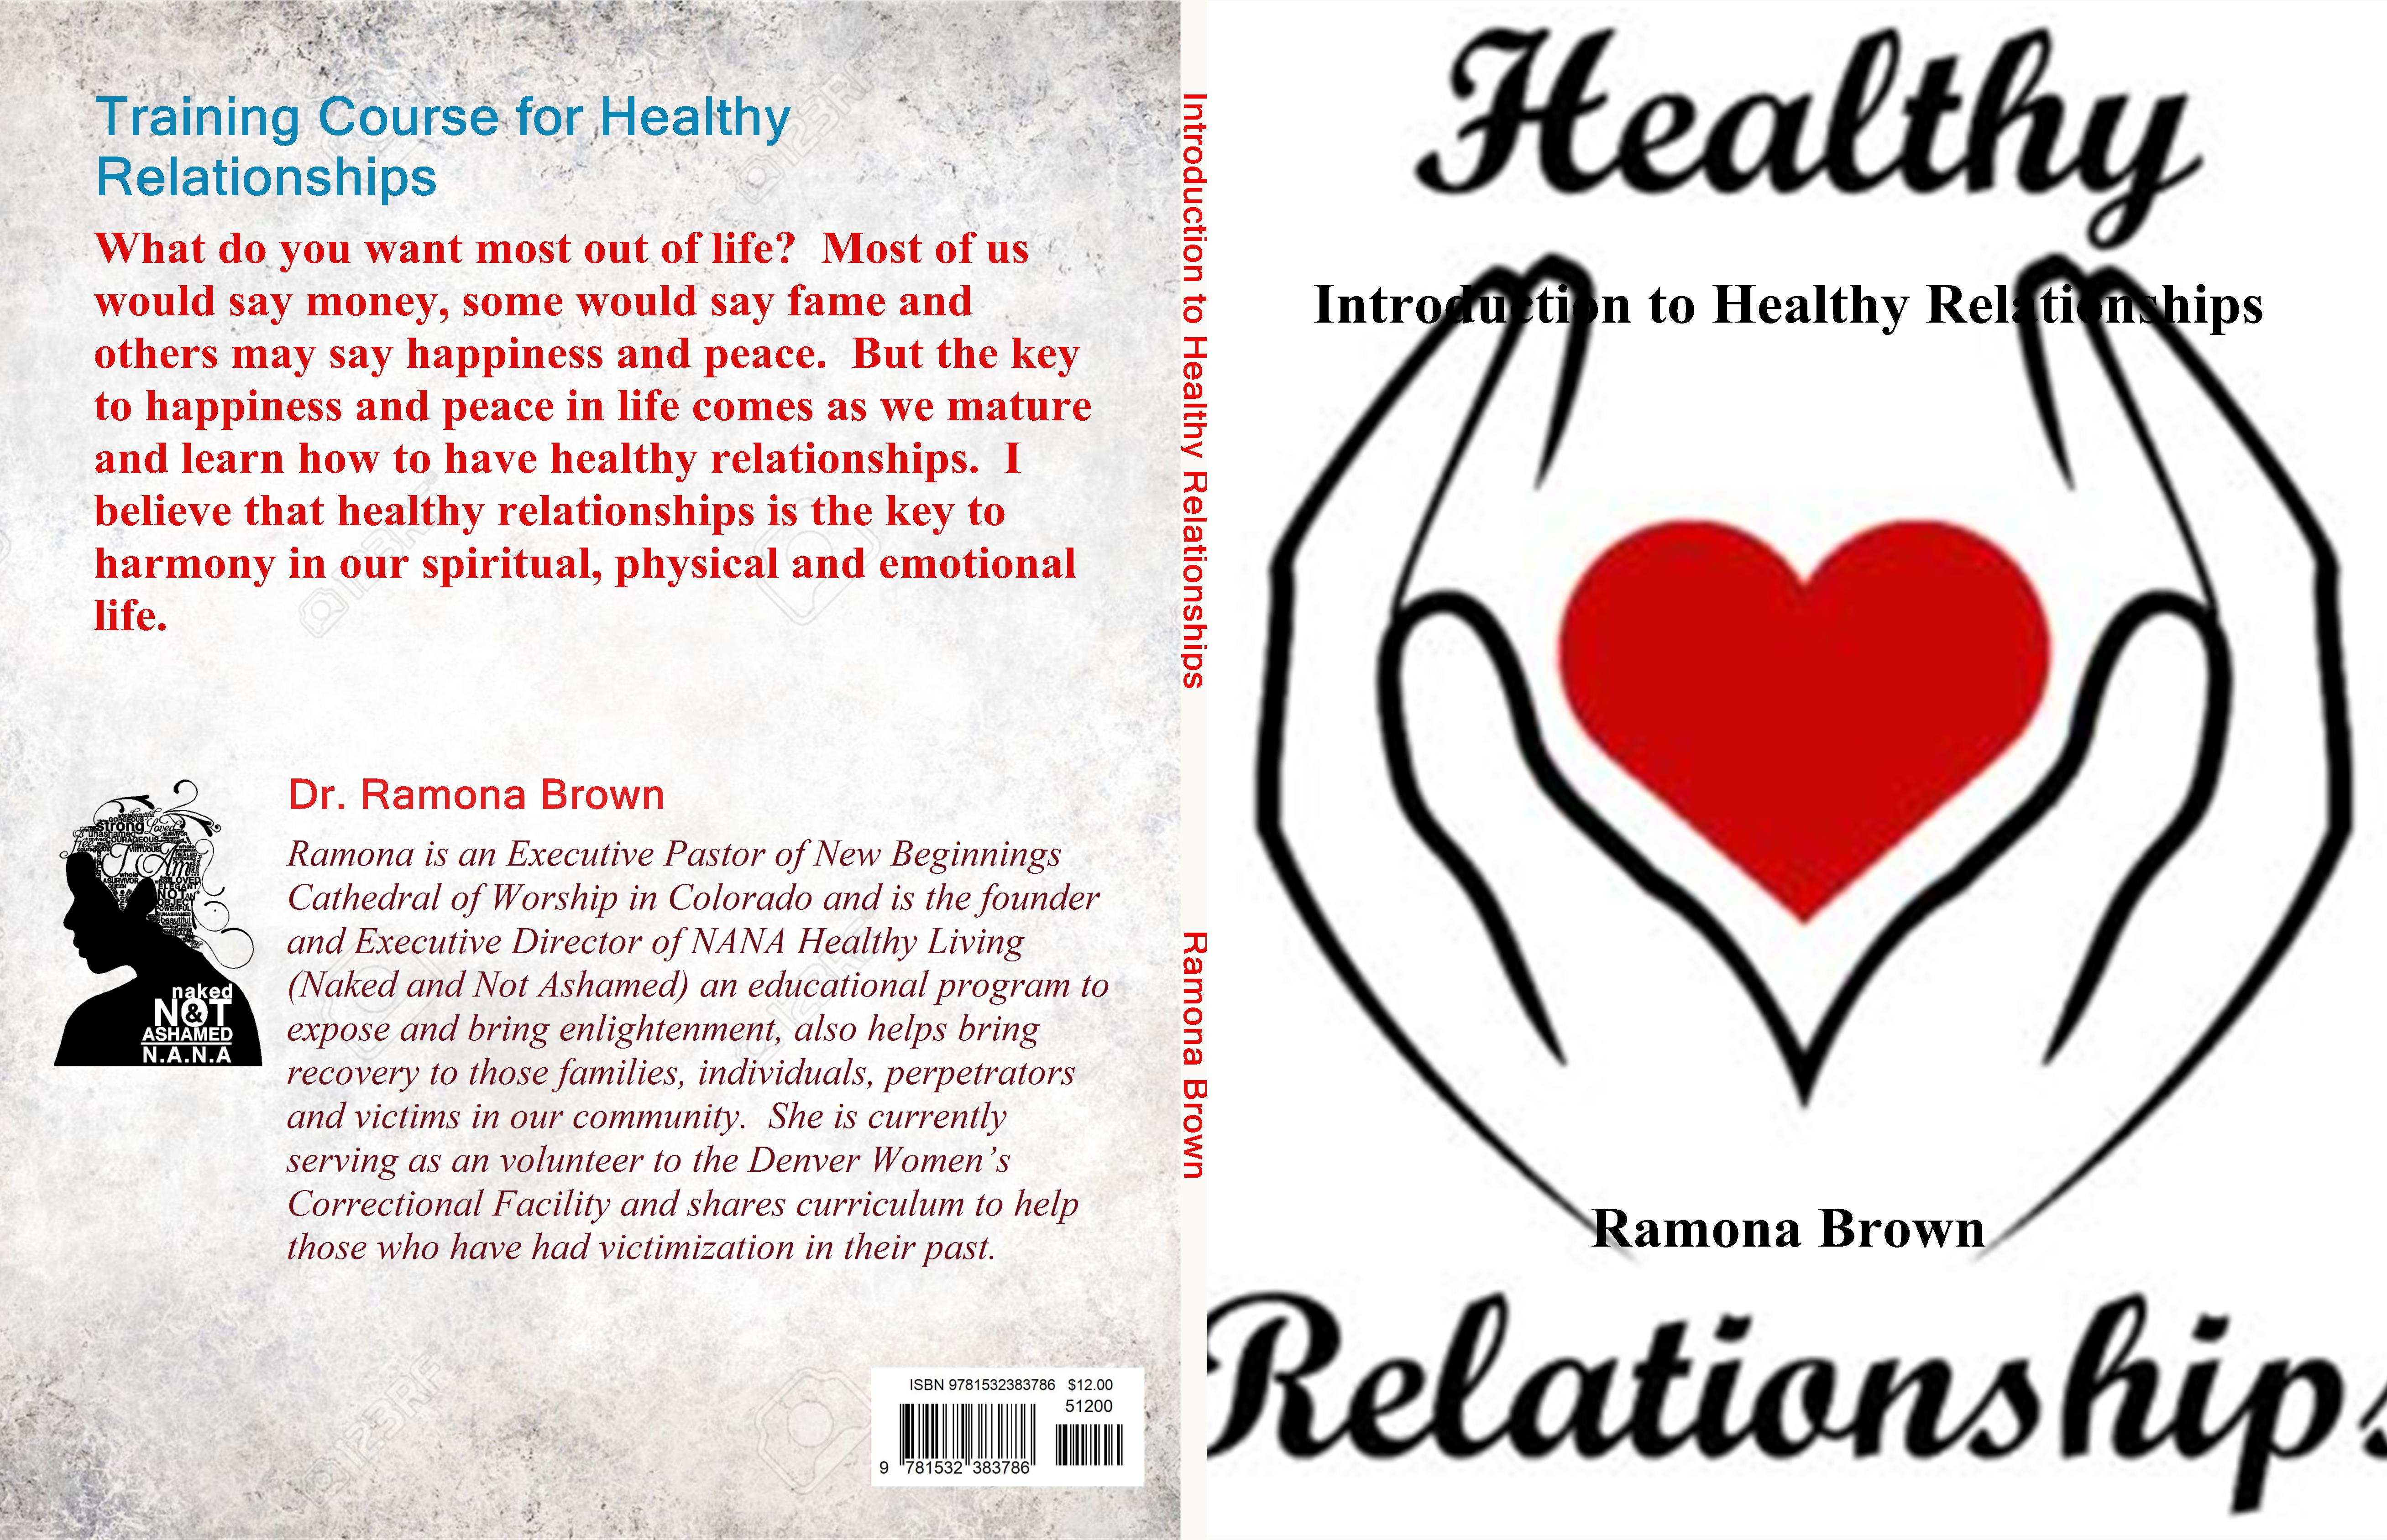 Introduction to Healthy Relationships cover image